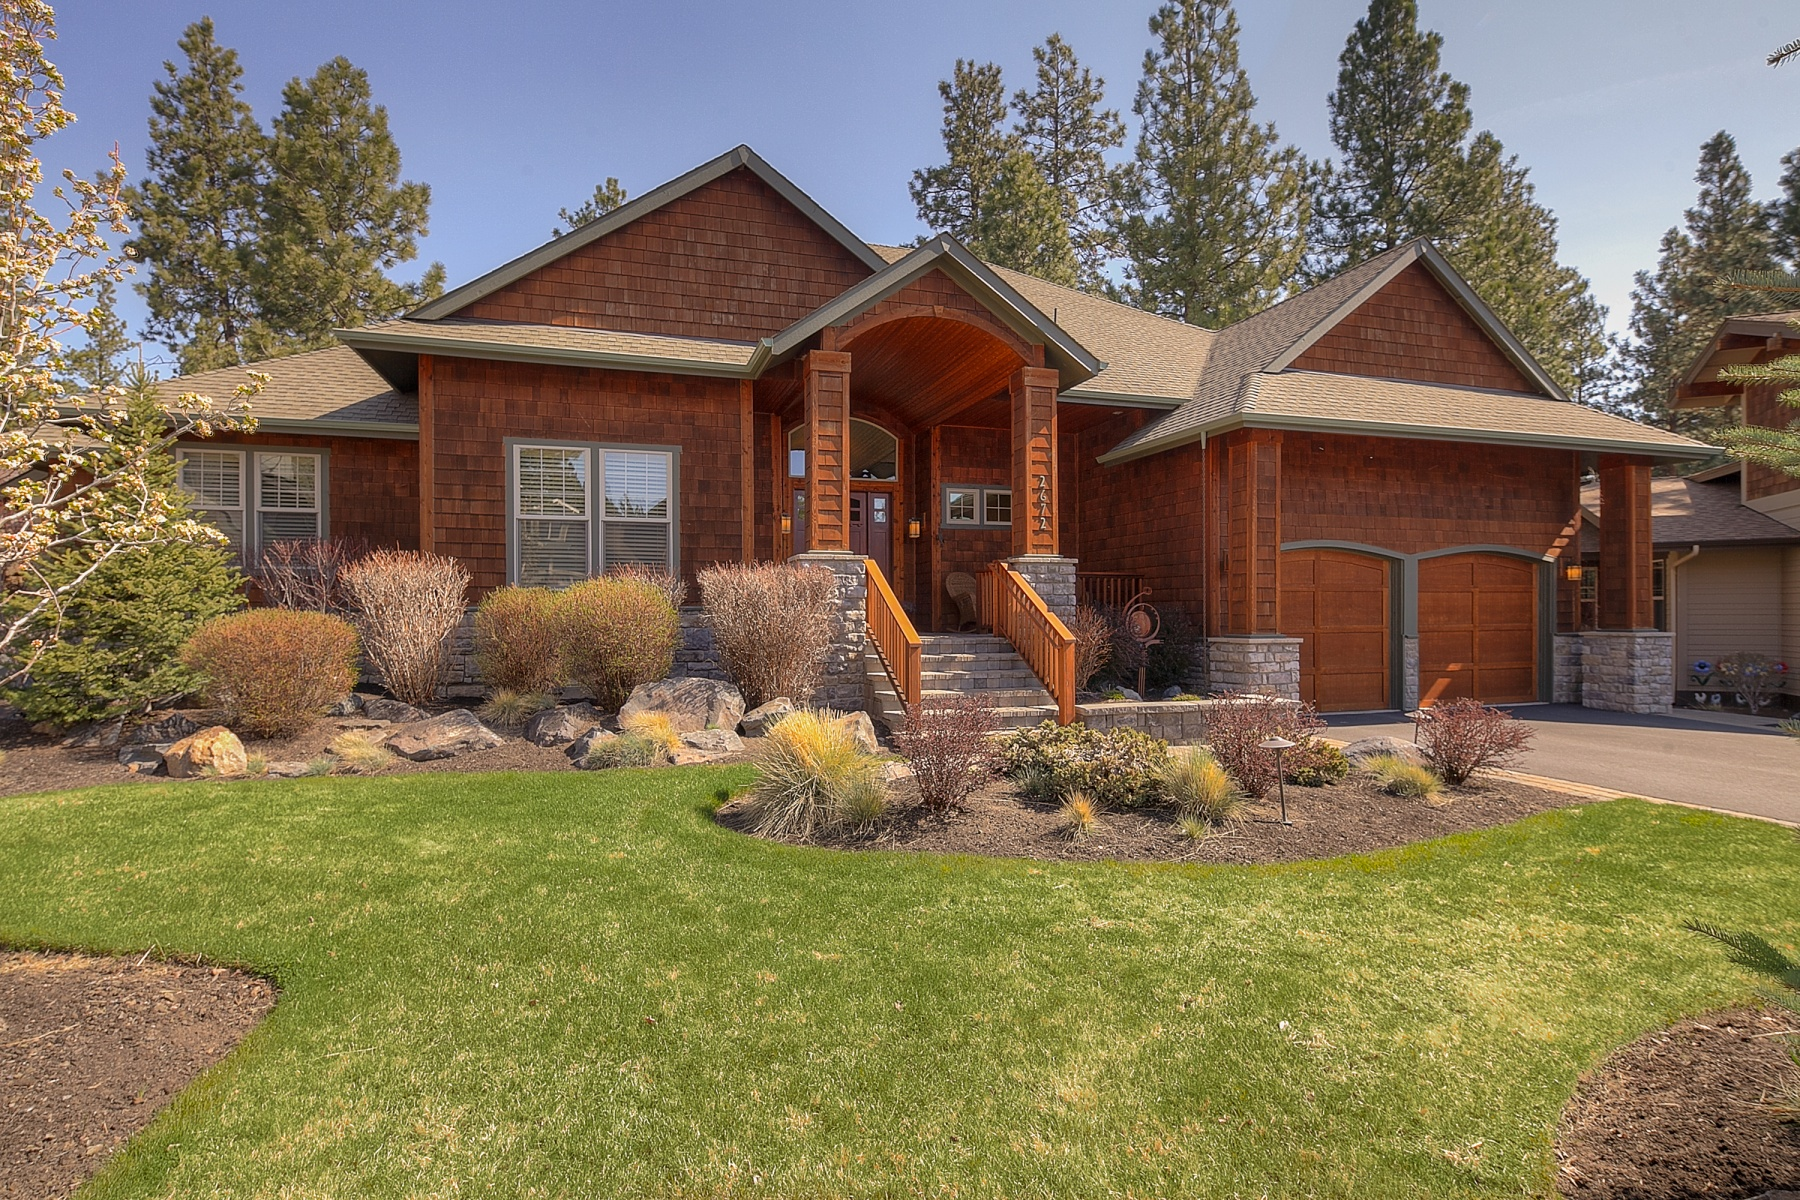 Single Family Home for Sale at Stunning Single Level Home 2672 NW Brickyard St Bend, Oregon, 97703 United States